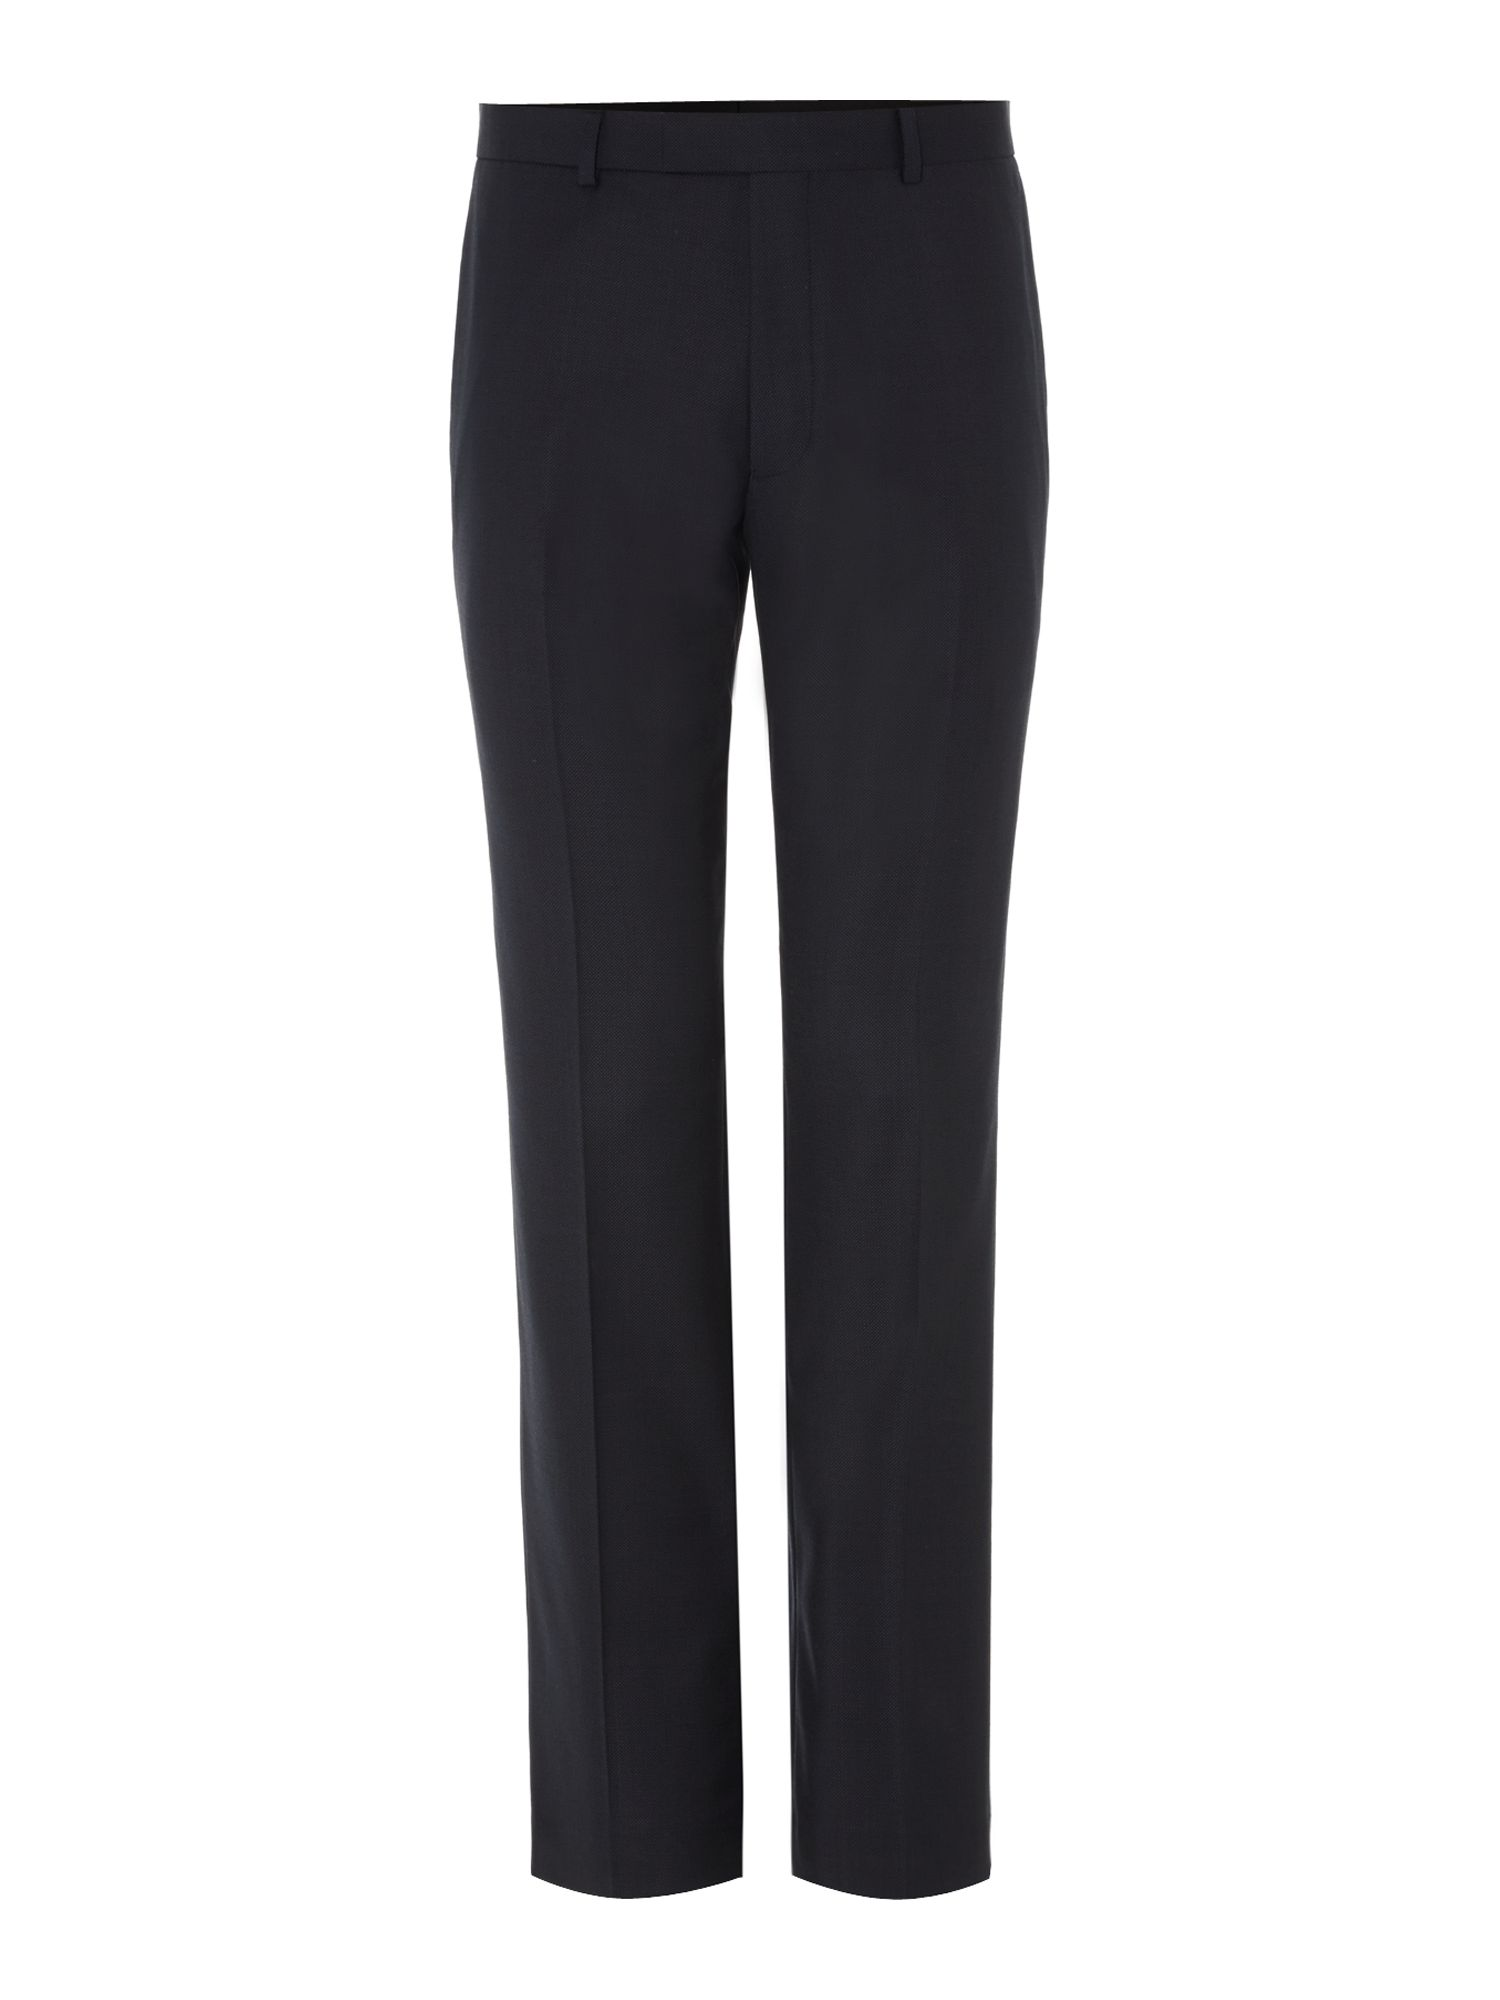 Richmond birdseye suit trouser